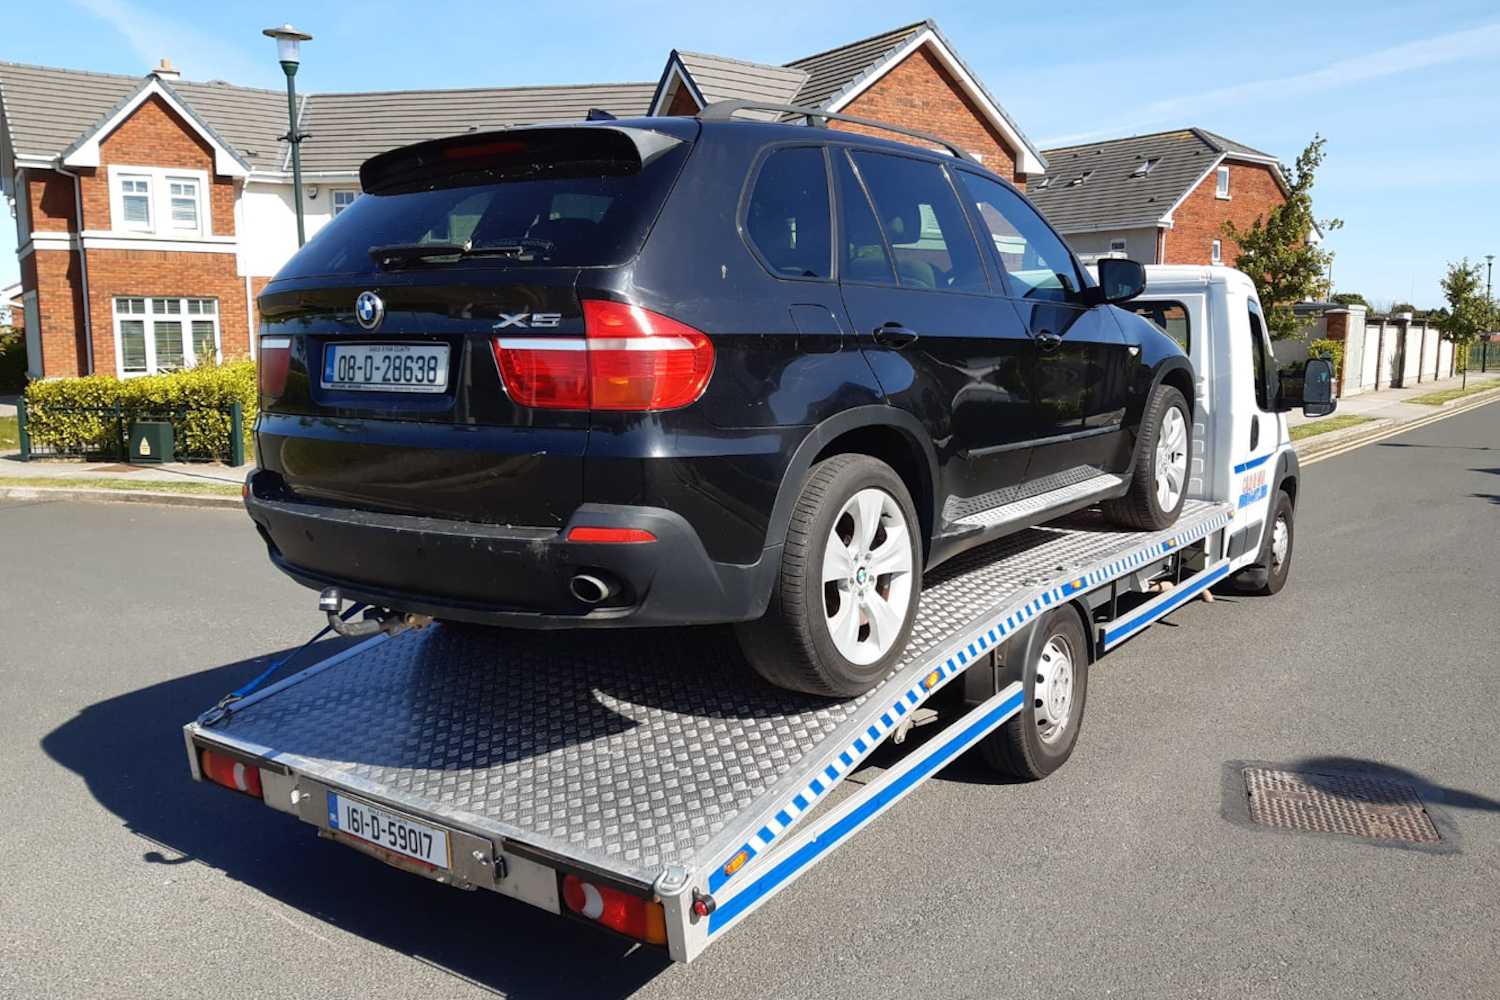 Car News | AsapTow Dublin free towing and assistance | CompleteCar.ie